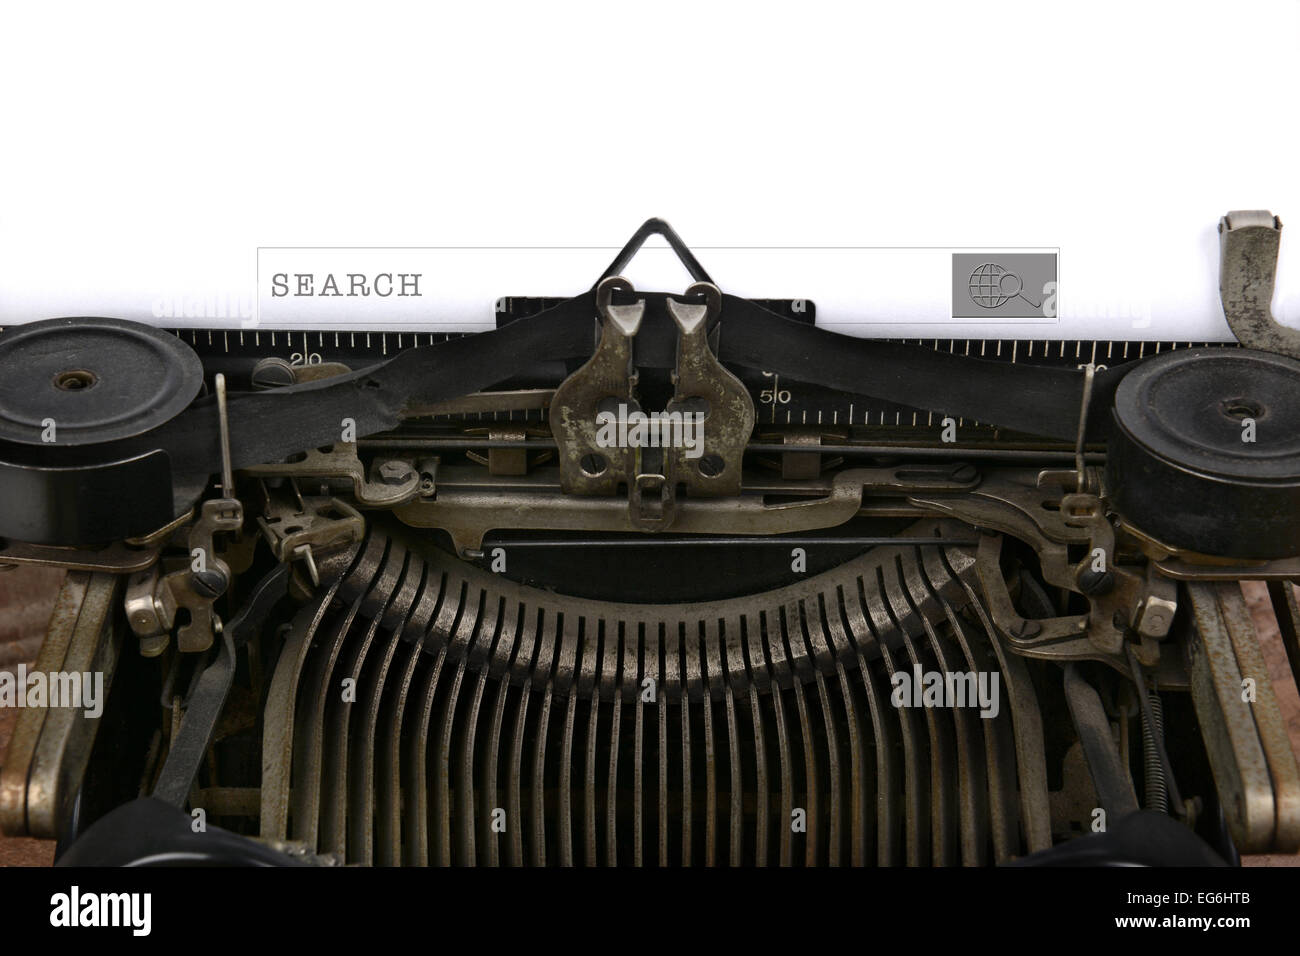 An old fashioned typewriter with a search box. Closeup of the antique machines ribbon and carriage with a modern Stock Photo